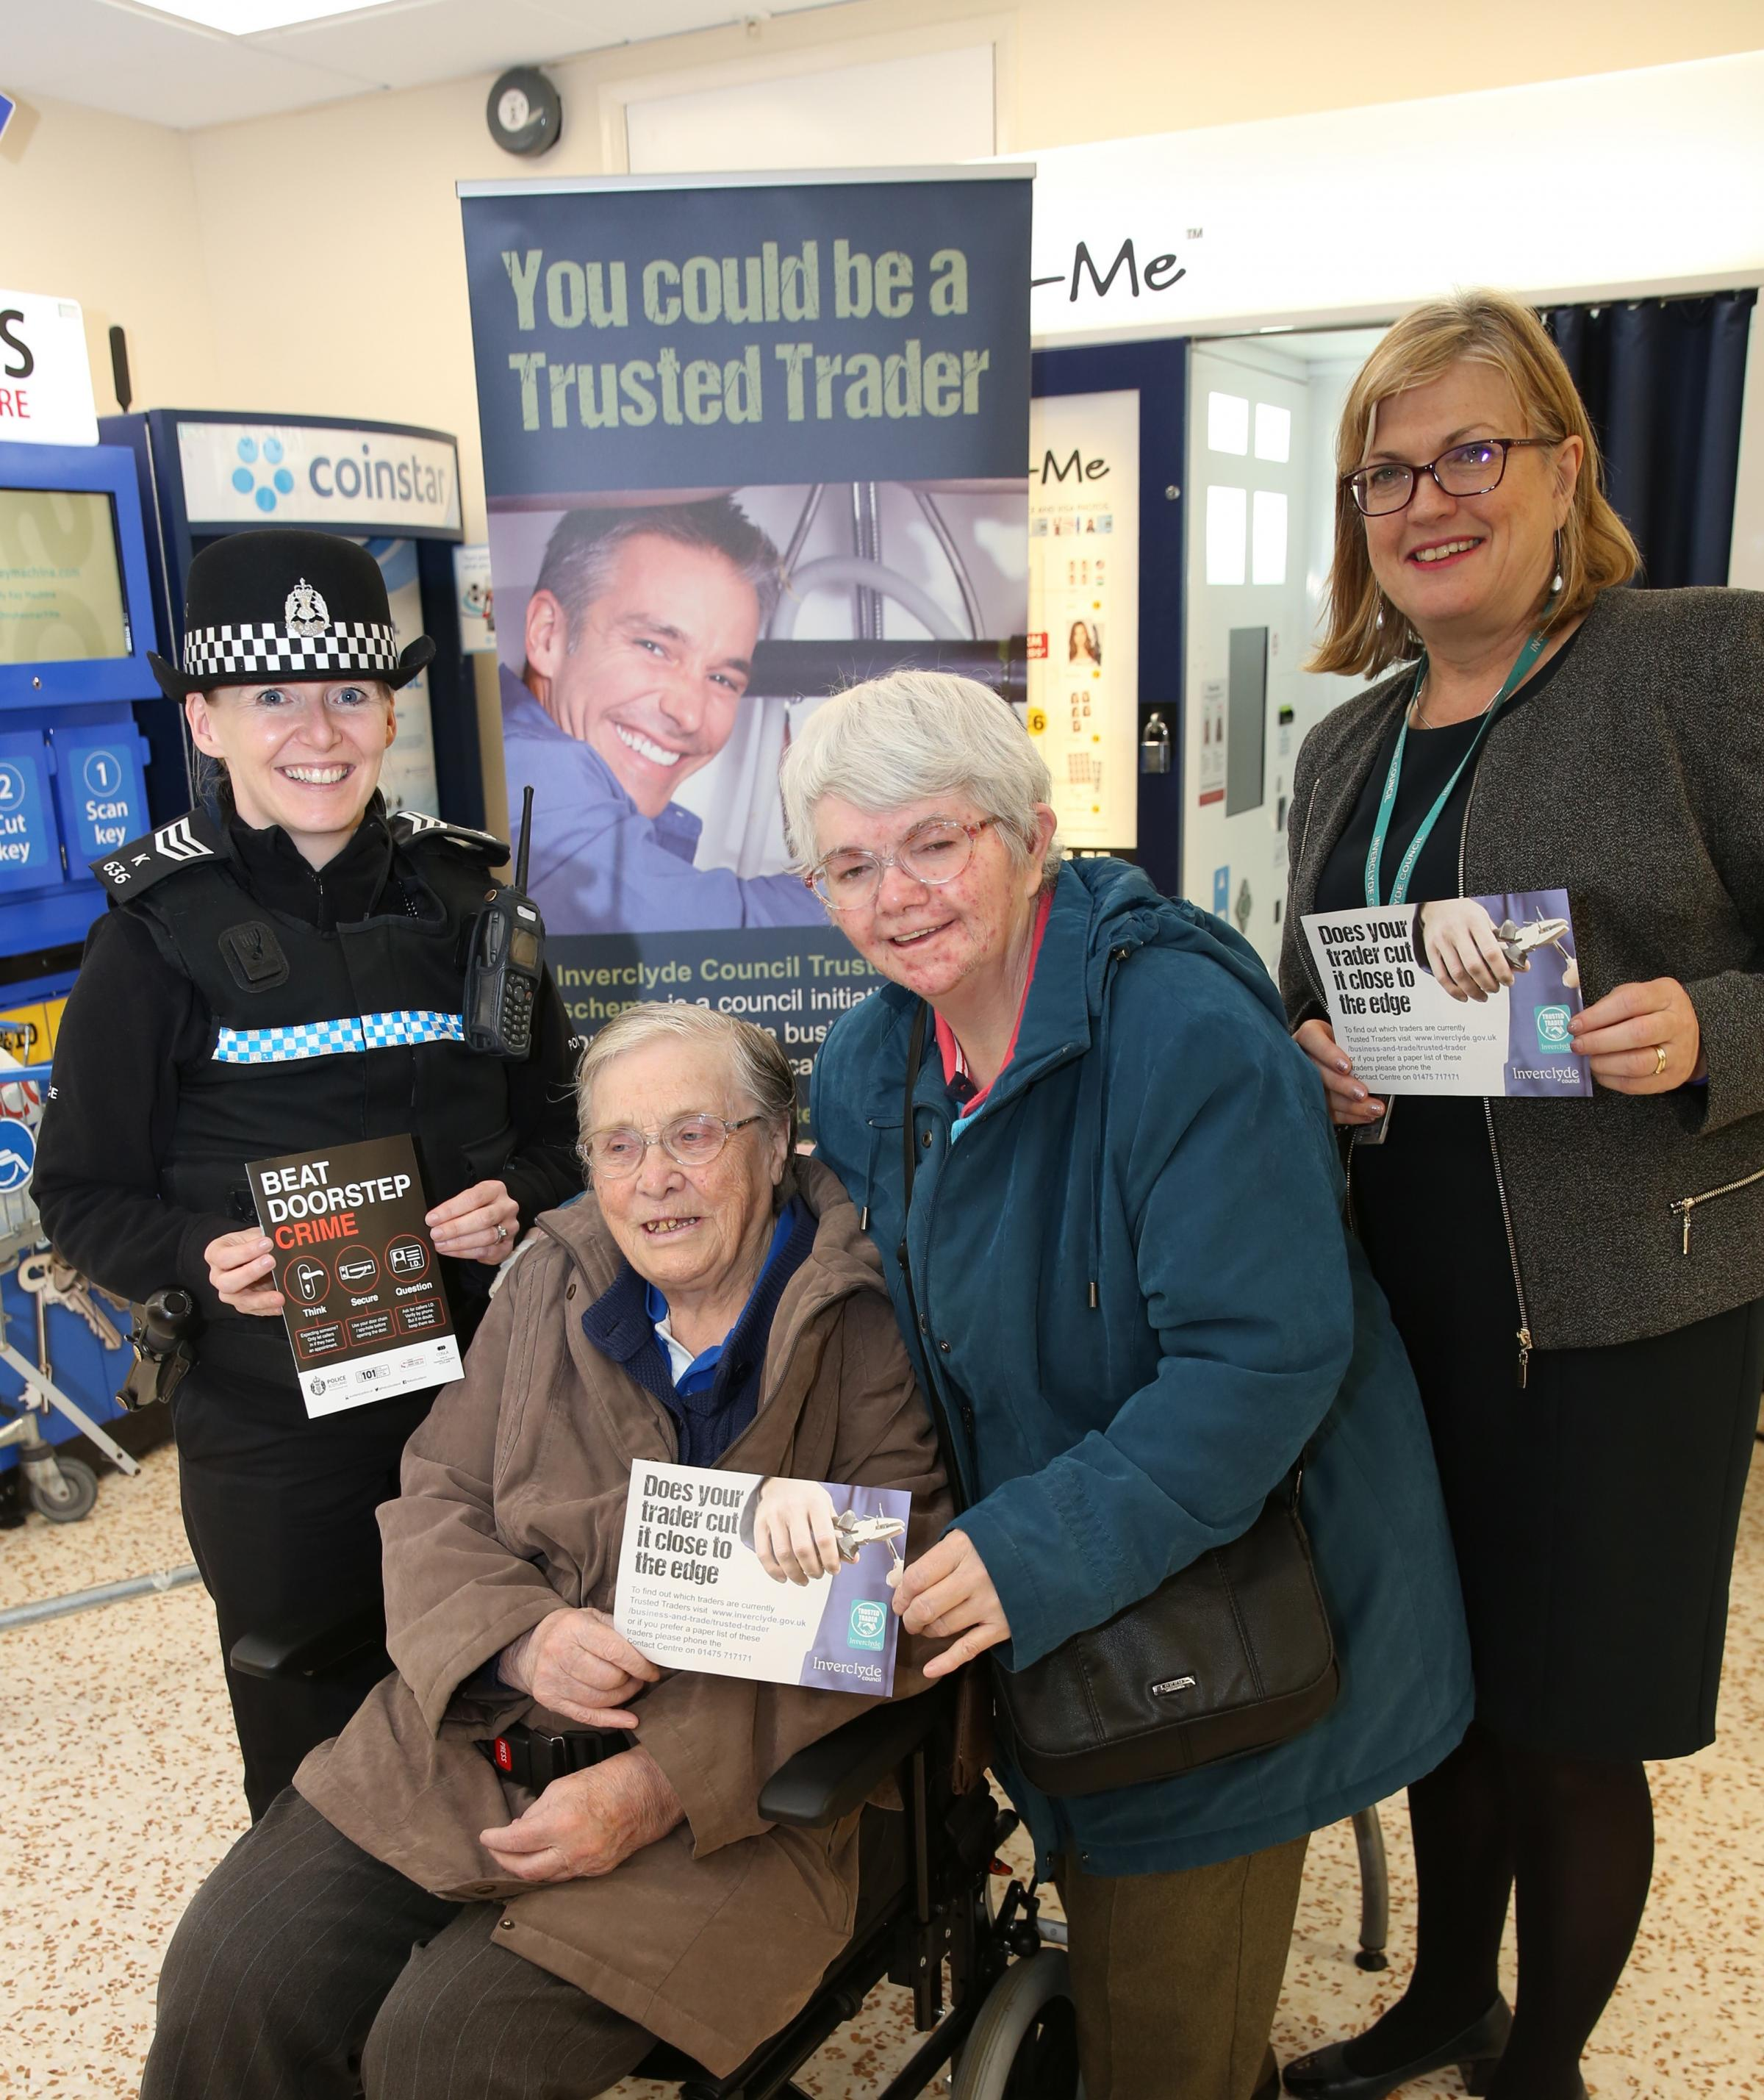 Police and Trading Standards Trusted Trader Scheme and Beat Doorstep Crime campaign at Morrisons in Greenock. Pictured from left, Sergeant Laura Stewart, Mary Heron, Margaret Jinks and Veronica McGinley, Trading Standards and enforcement team leader.